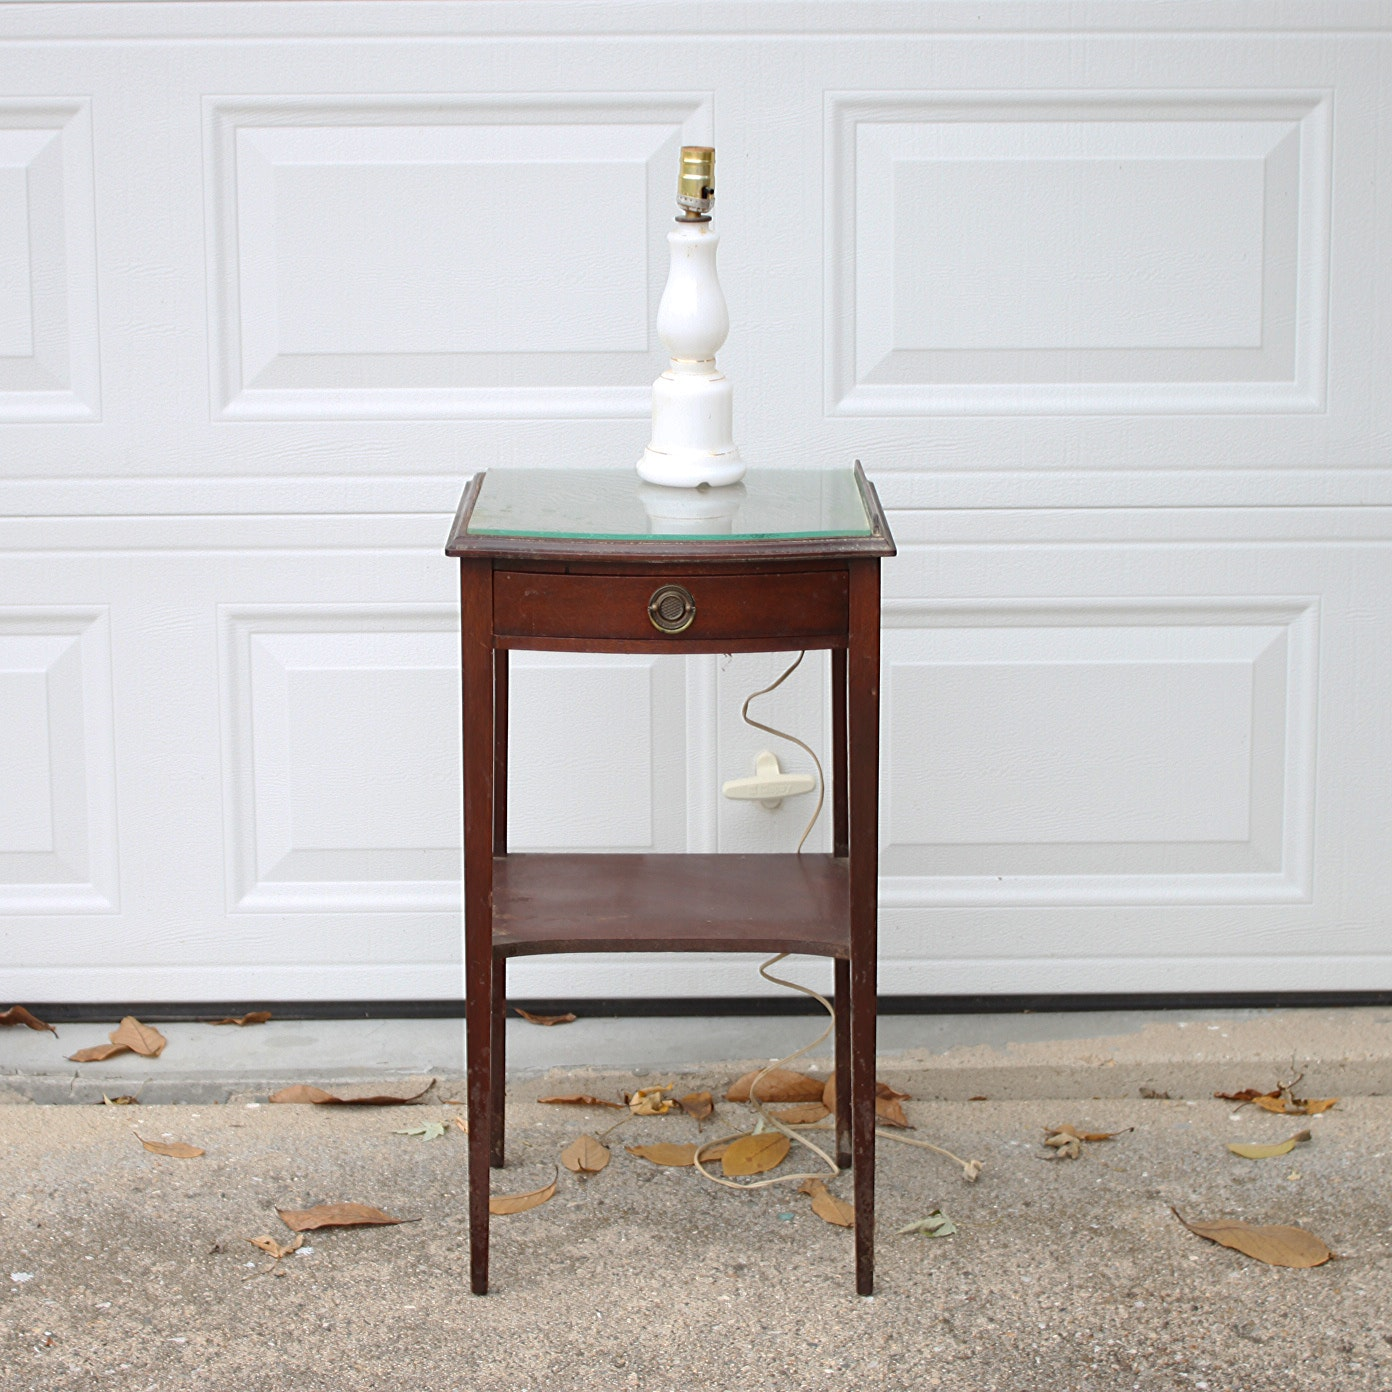 Vintage Side Table with Milk Glass Lamp